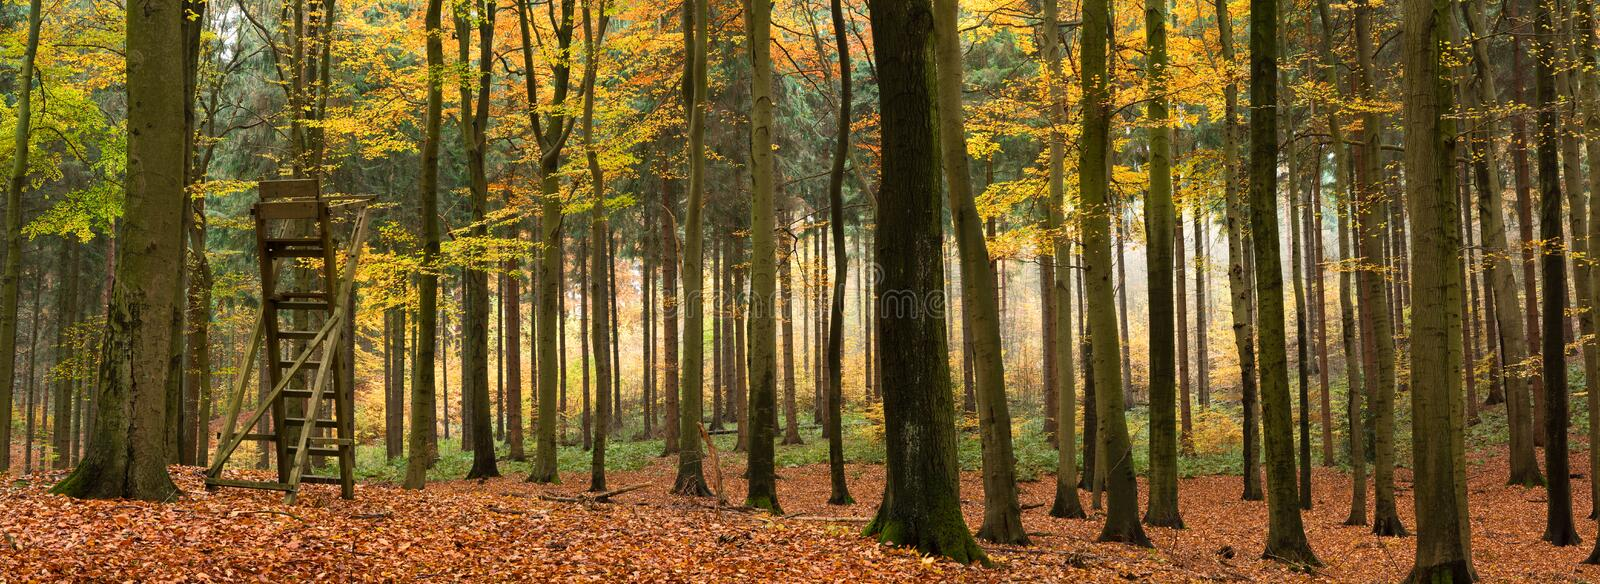 Mixed autumn forest panorama. Panorama of a foggy mixed forest in autumn. Vibrant deciduous trees grow in front of coniferous trees with a wooden raised hide for stock photo